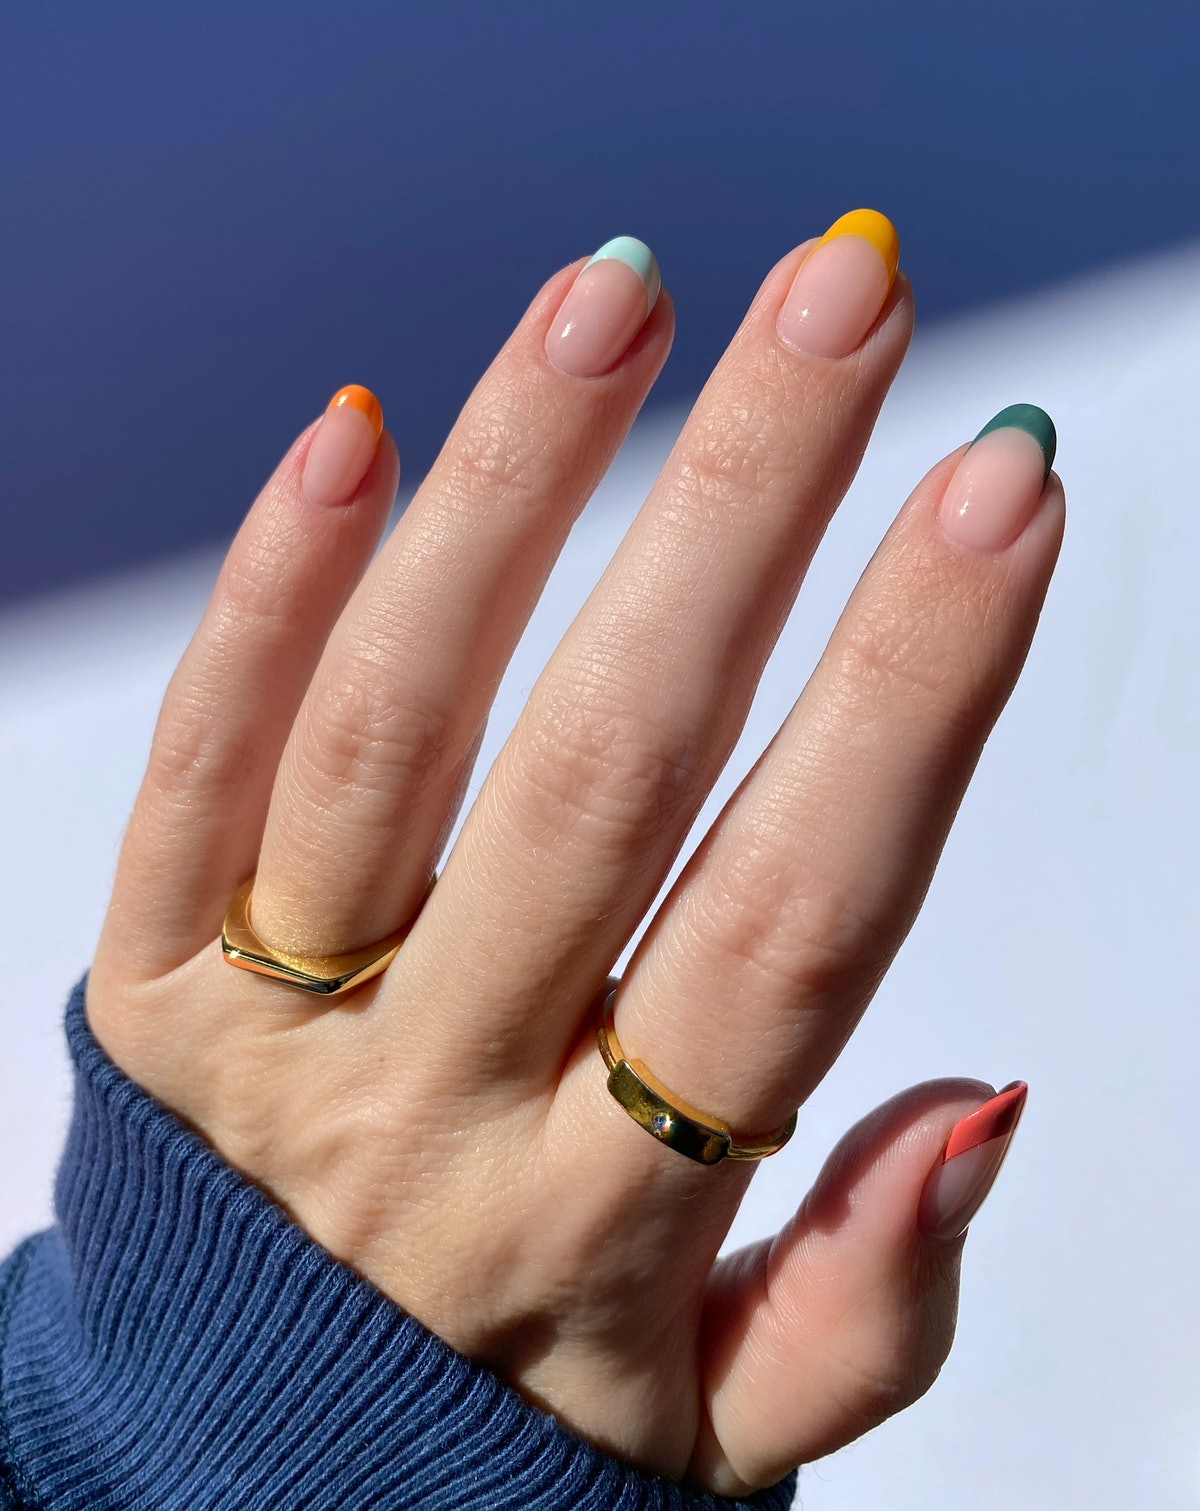 Spring 2021 nail color trend: blue and green.